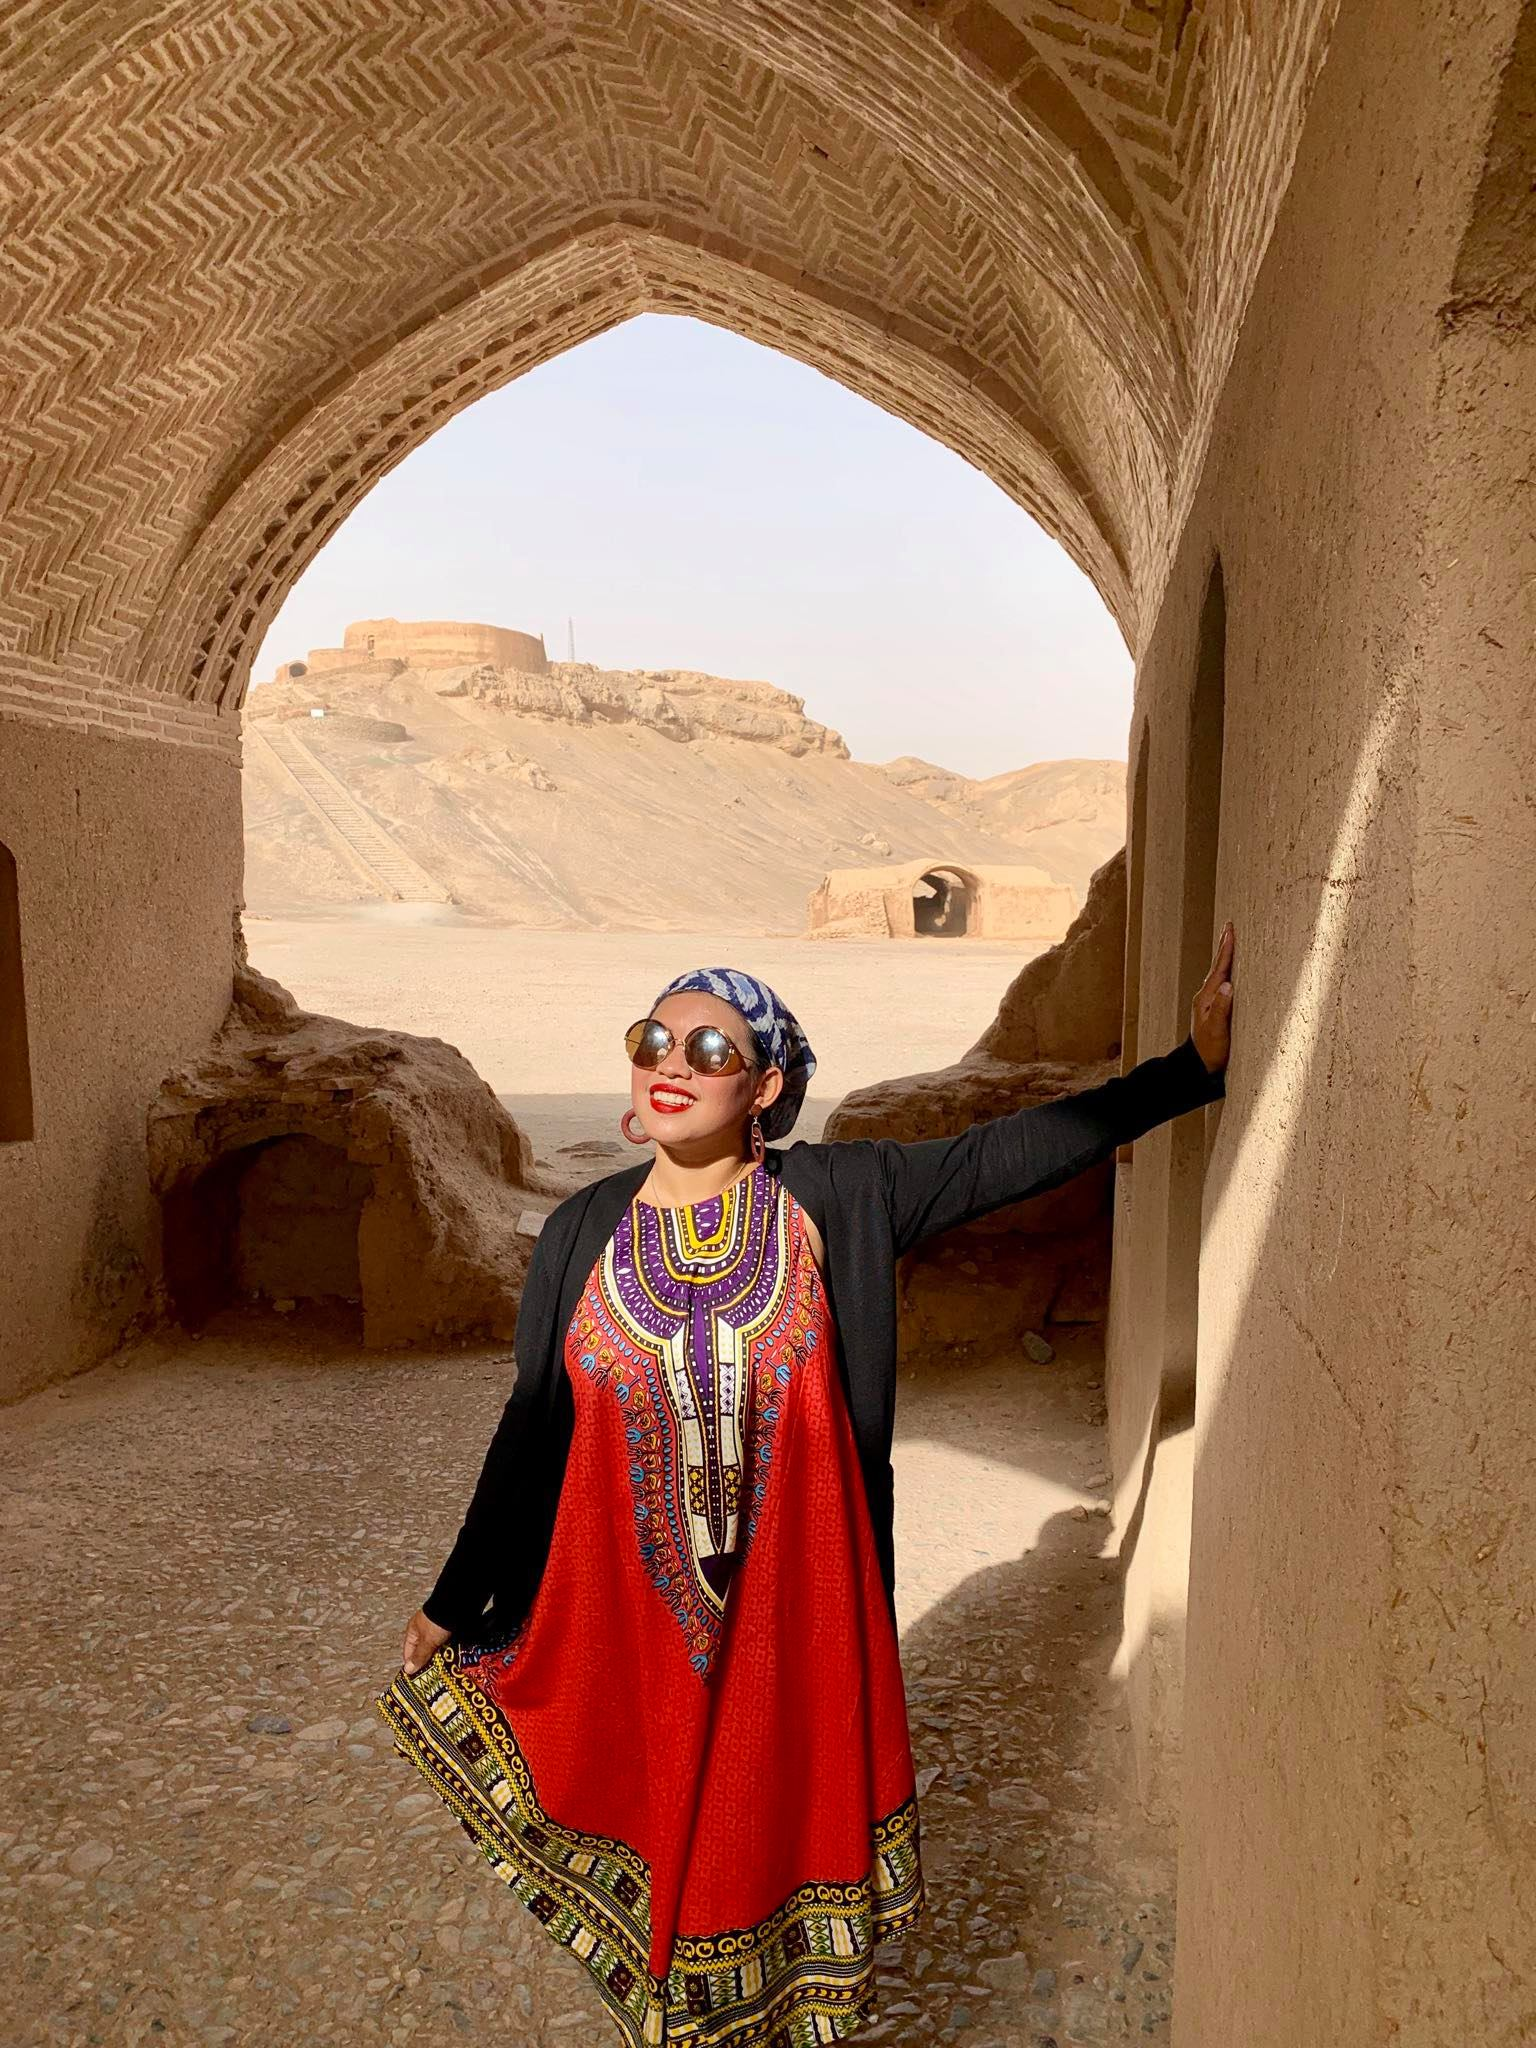 Kach Solo Travels in 2019 YAZD - the desert city in Iran18.jpg